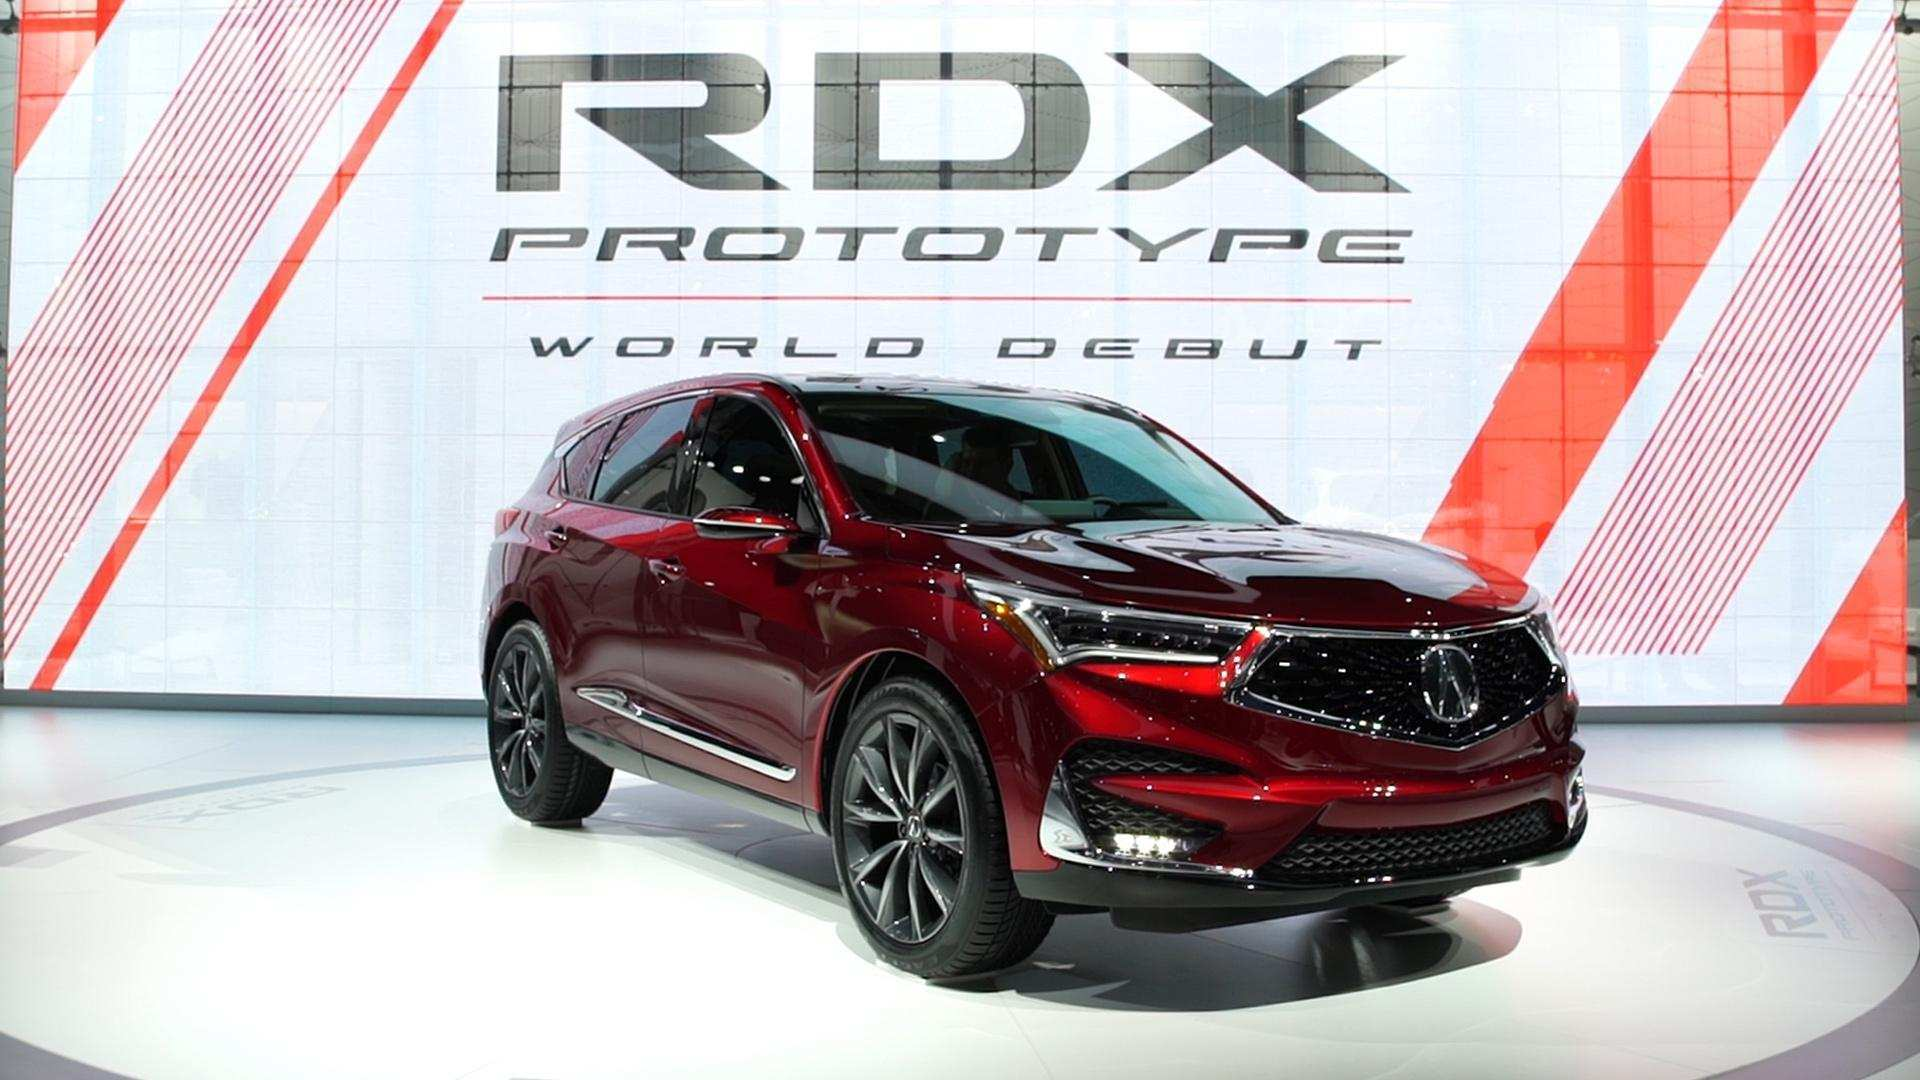 38 Concept of New Acura Rdx 2019 First Drive Release Date And Specs Pictures by New Acura Rdx 2019 First Drive Release Date And Specs